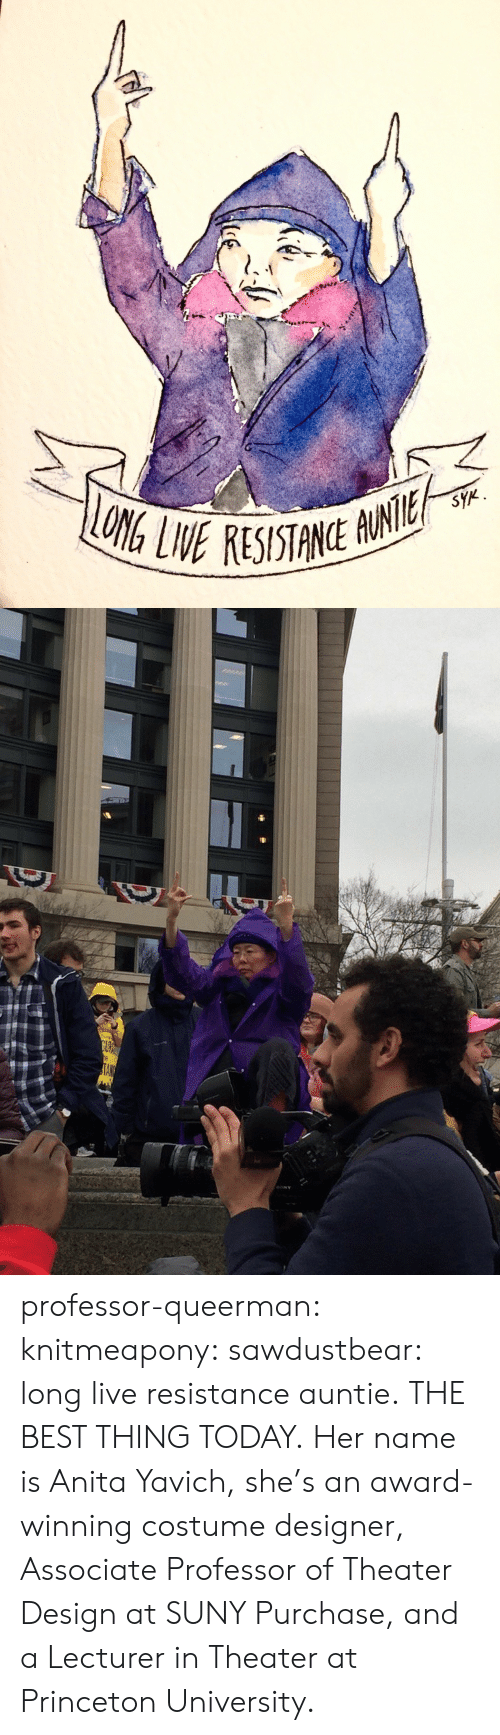 Target, Tumblr, and Best: professor-queerman:  knitmeapony:  sawdustbear: long live resistance auntie. THE BEST THING TODAY.   Her name is Anita Yavich, she's an award-winning costume designer, Associate Professor of Theater Design at SUNY Purchase, and a Lecturer in Theater at Princeton University.